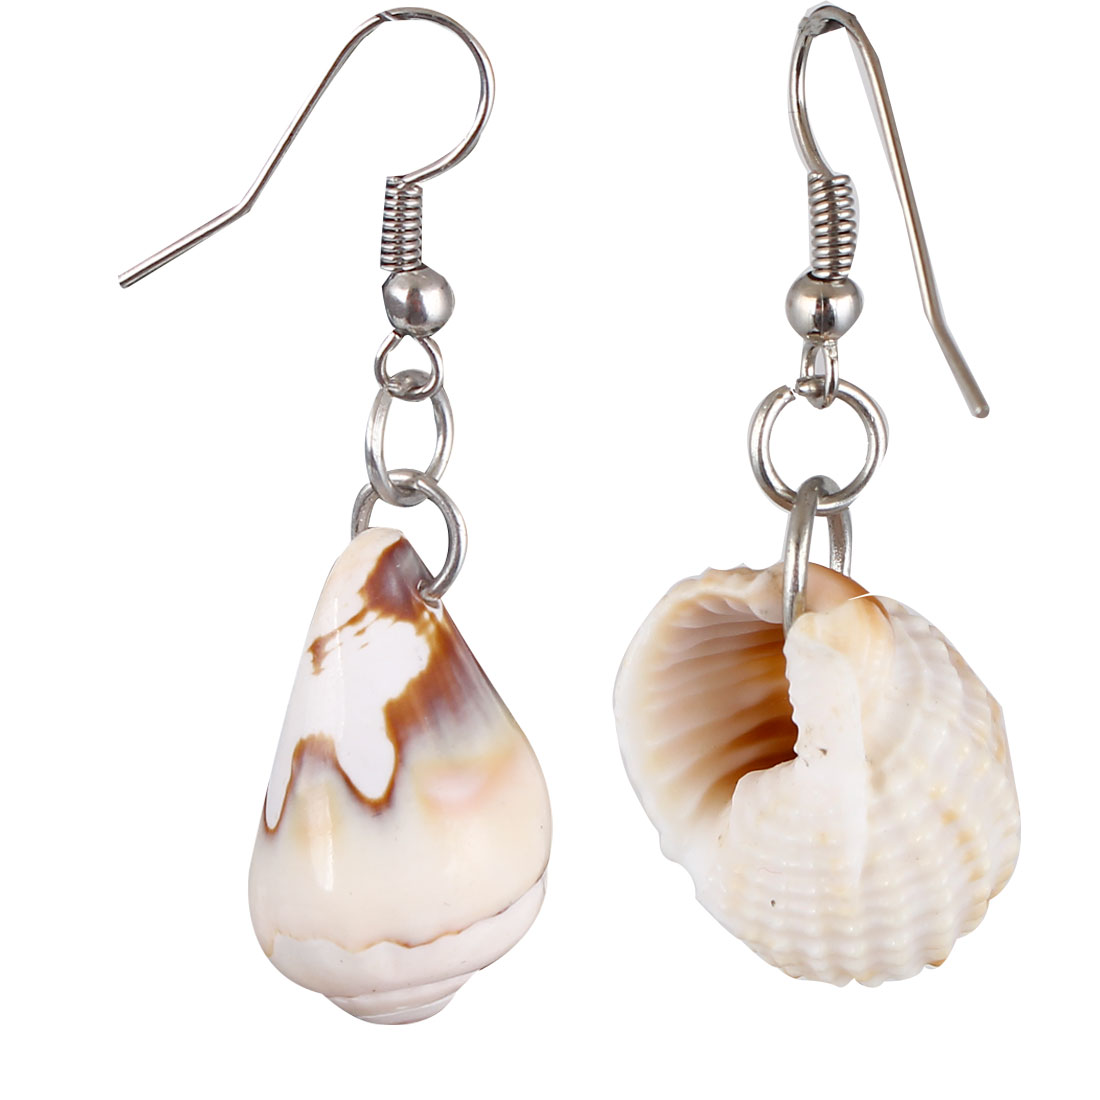 Pair Beige Sea Shell Pendant Dangling Fish Hook Ear Drops Earrings Eardrops